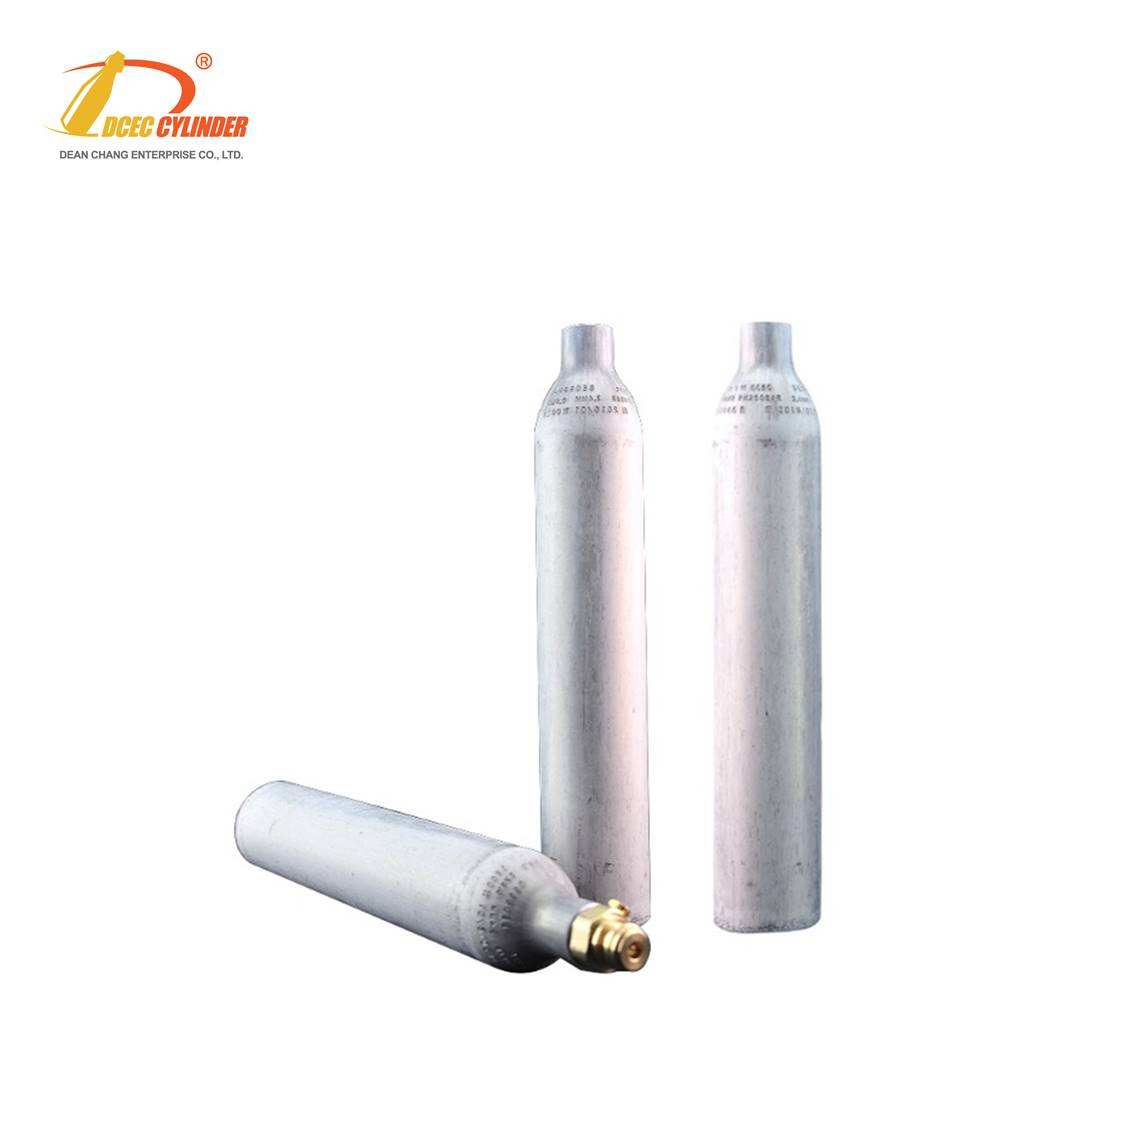 0.6L co2 cylinders for sodastream machine